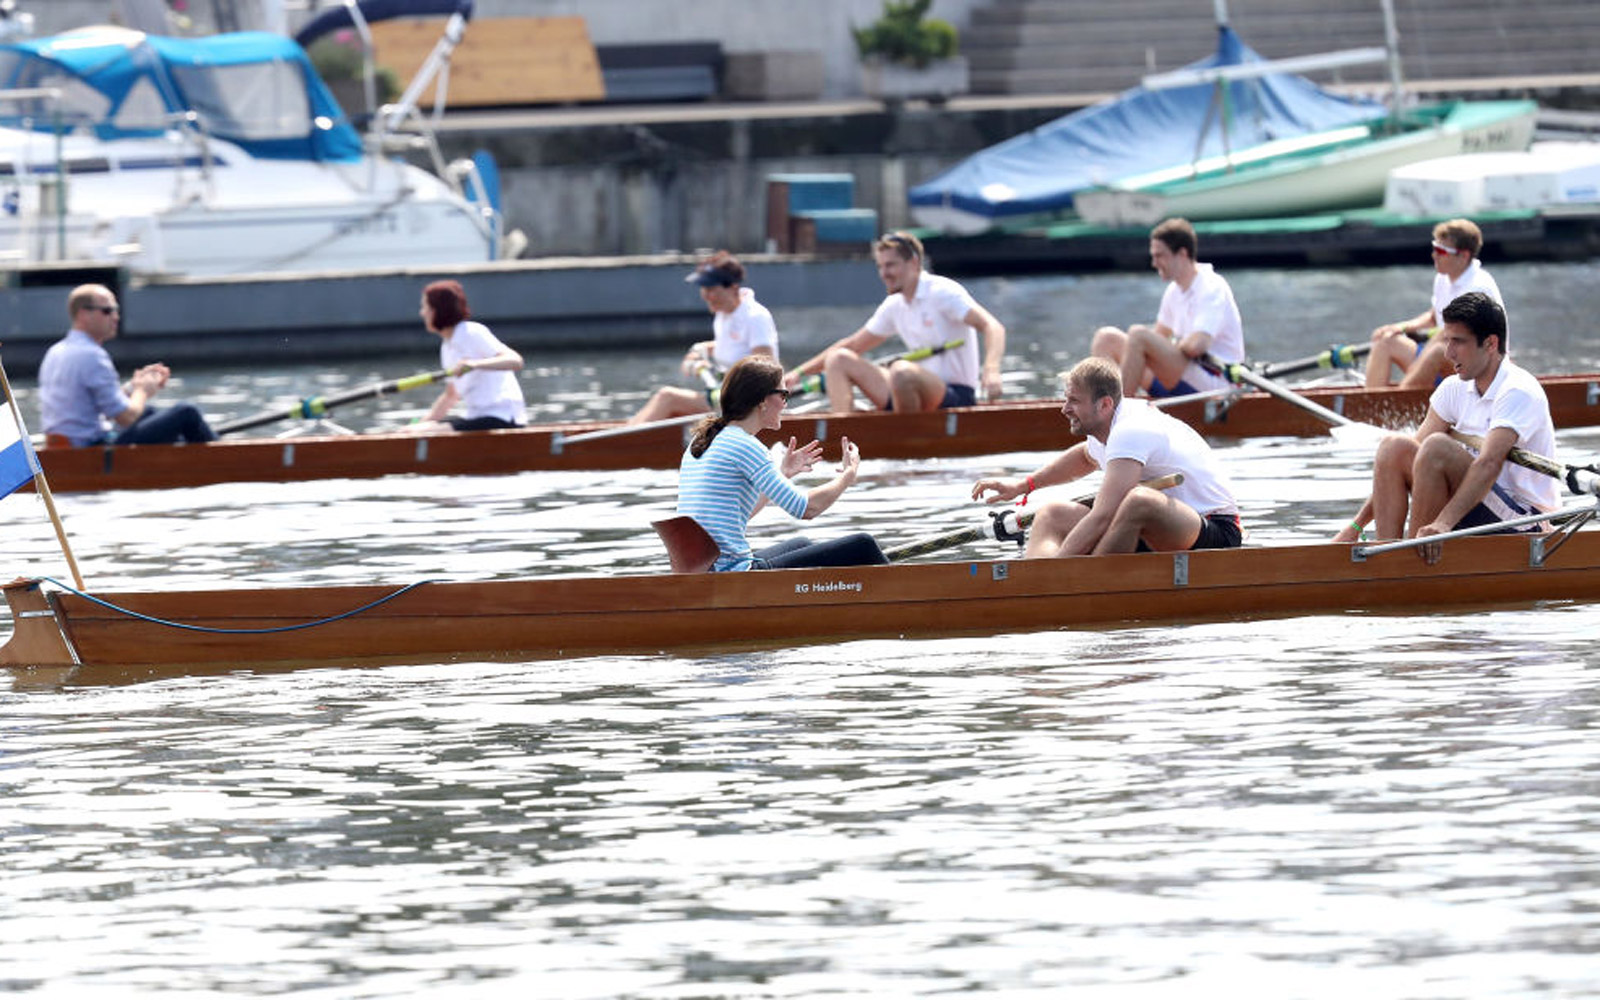 HEIDELBERG, GERMANY - JULY 20:  Prince William, Duke of Cambridge and Catherine, Duchess of Cambridge participate in a rowing race between the twinned town of Cambridge and Heidelberg on day 2 of their official visit to Germany on July 20, 2017 in Heidelb